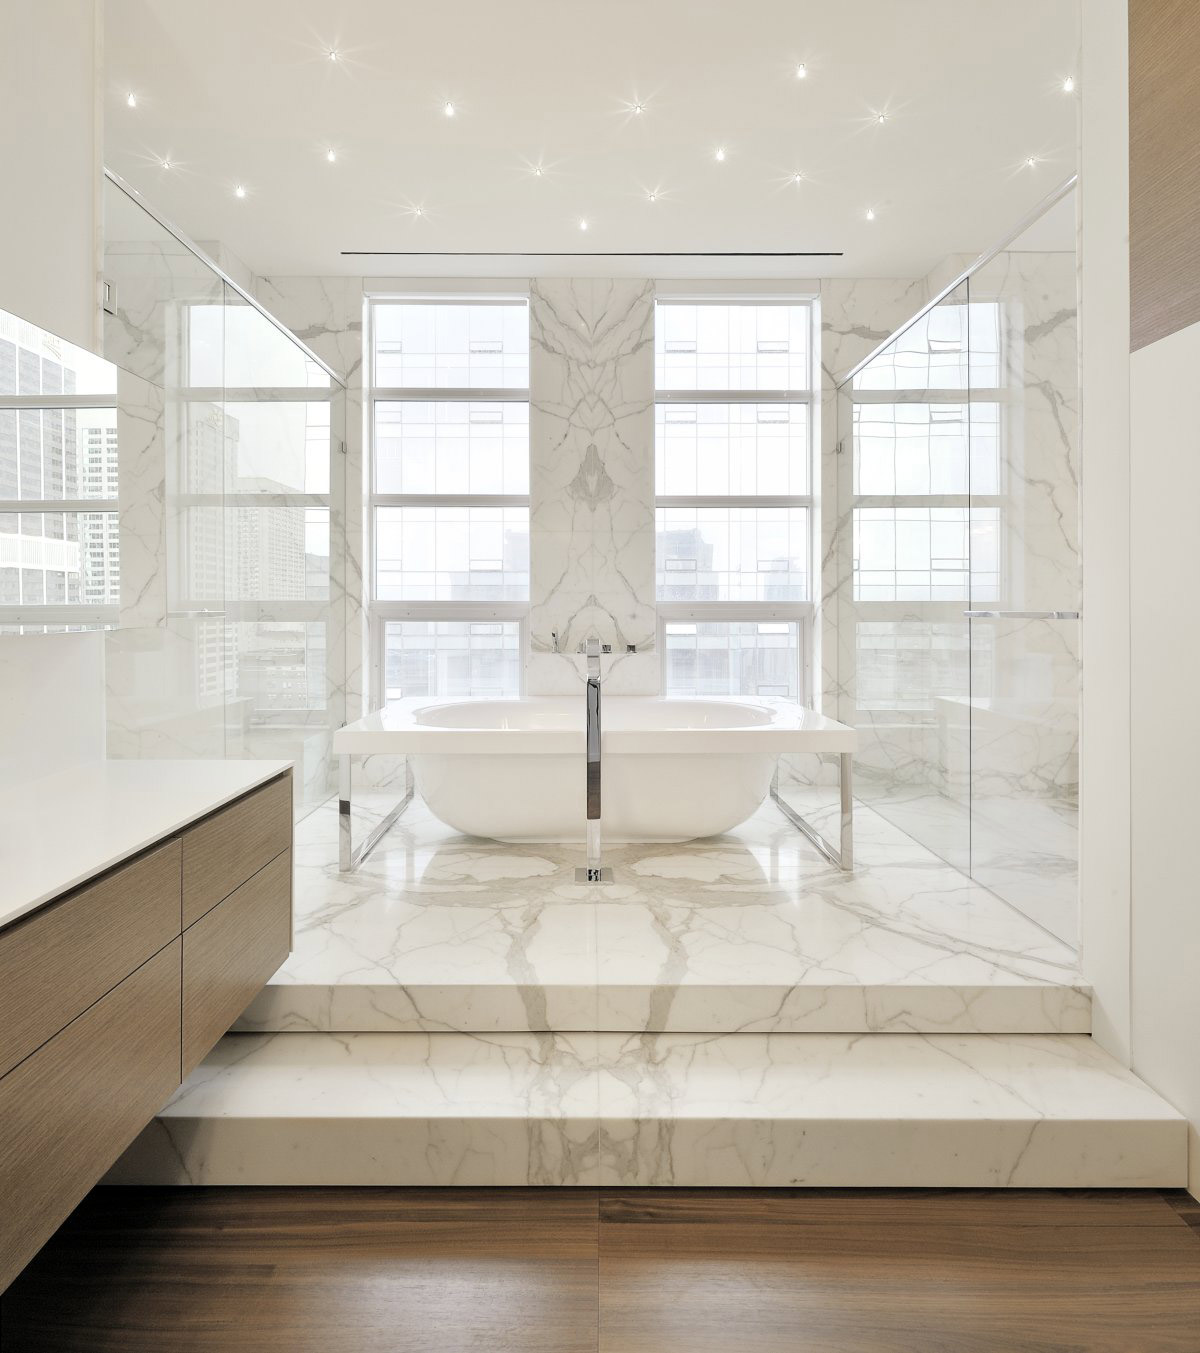 Marble Tiles, Lighting, Bath, Yorkville Penthouse II in Toronto, Canada by Cecconi Simone